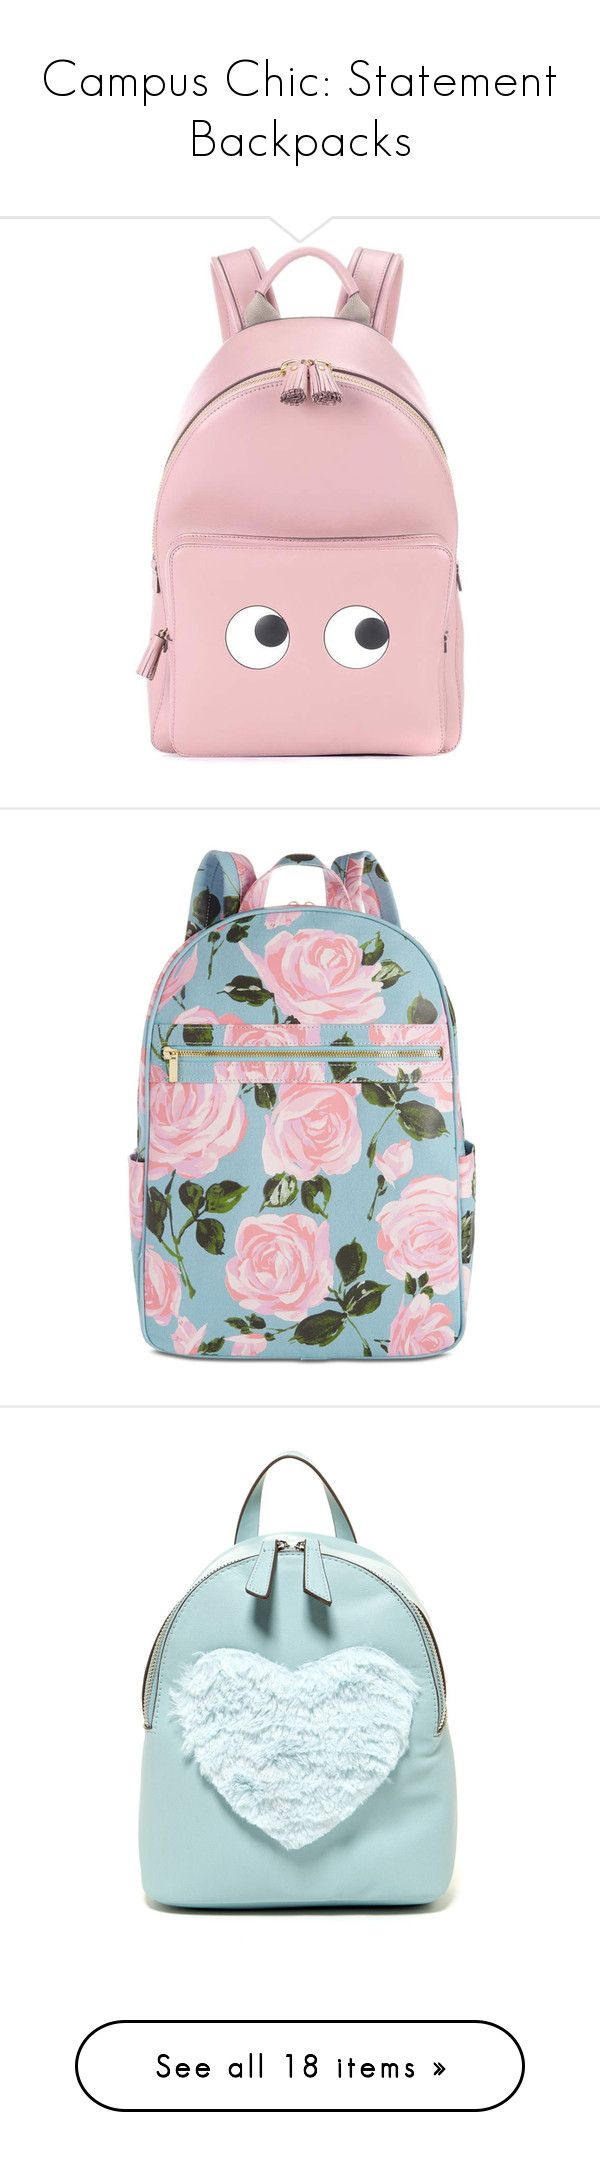 """""""Campus Chic: Statement Backpacks"""" by polyvore-editorial ❤ liked on Polyvore featuring statementbackpacks, bags, backpacks, backpack, pink, anya hindmarch, day pack backpack, leather daypack, mini bag and genuine leather backpack"""